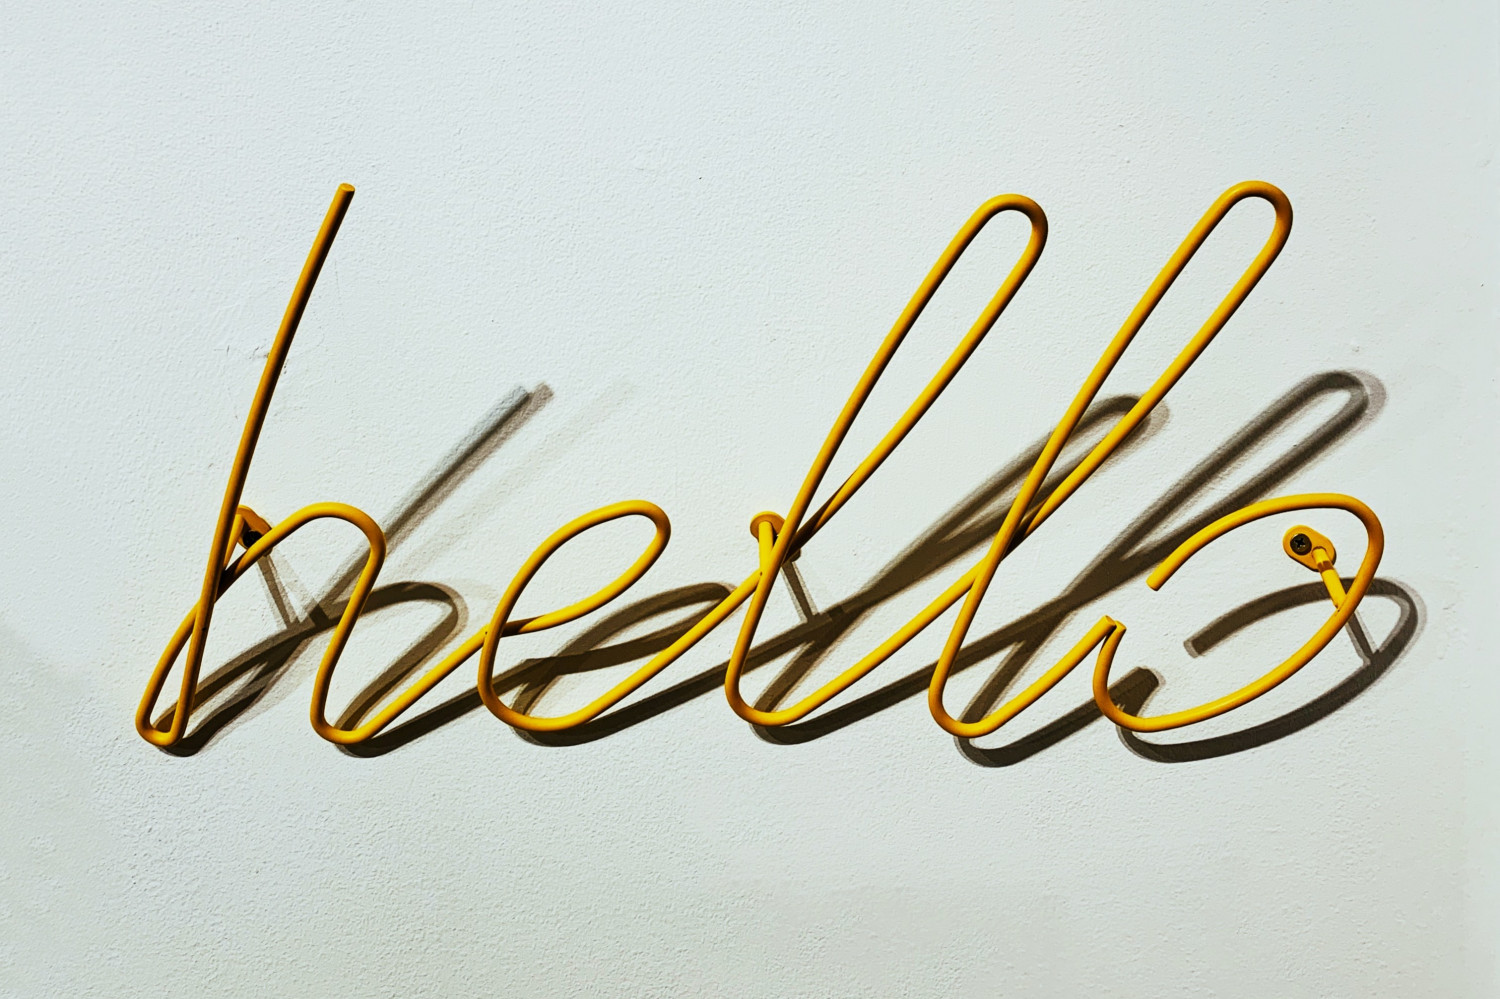 Image of a sign that reads 'hello'